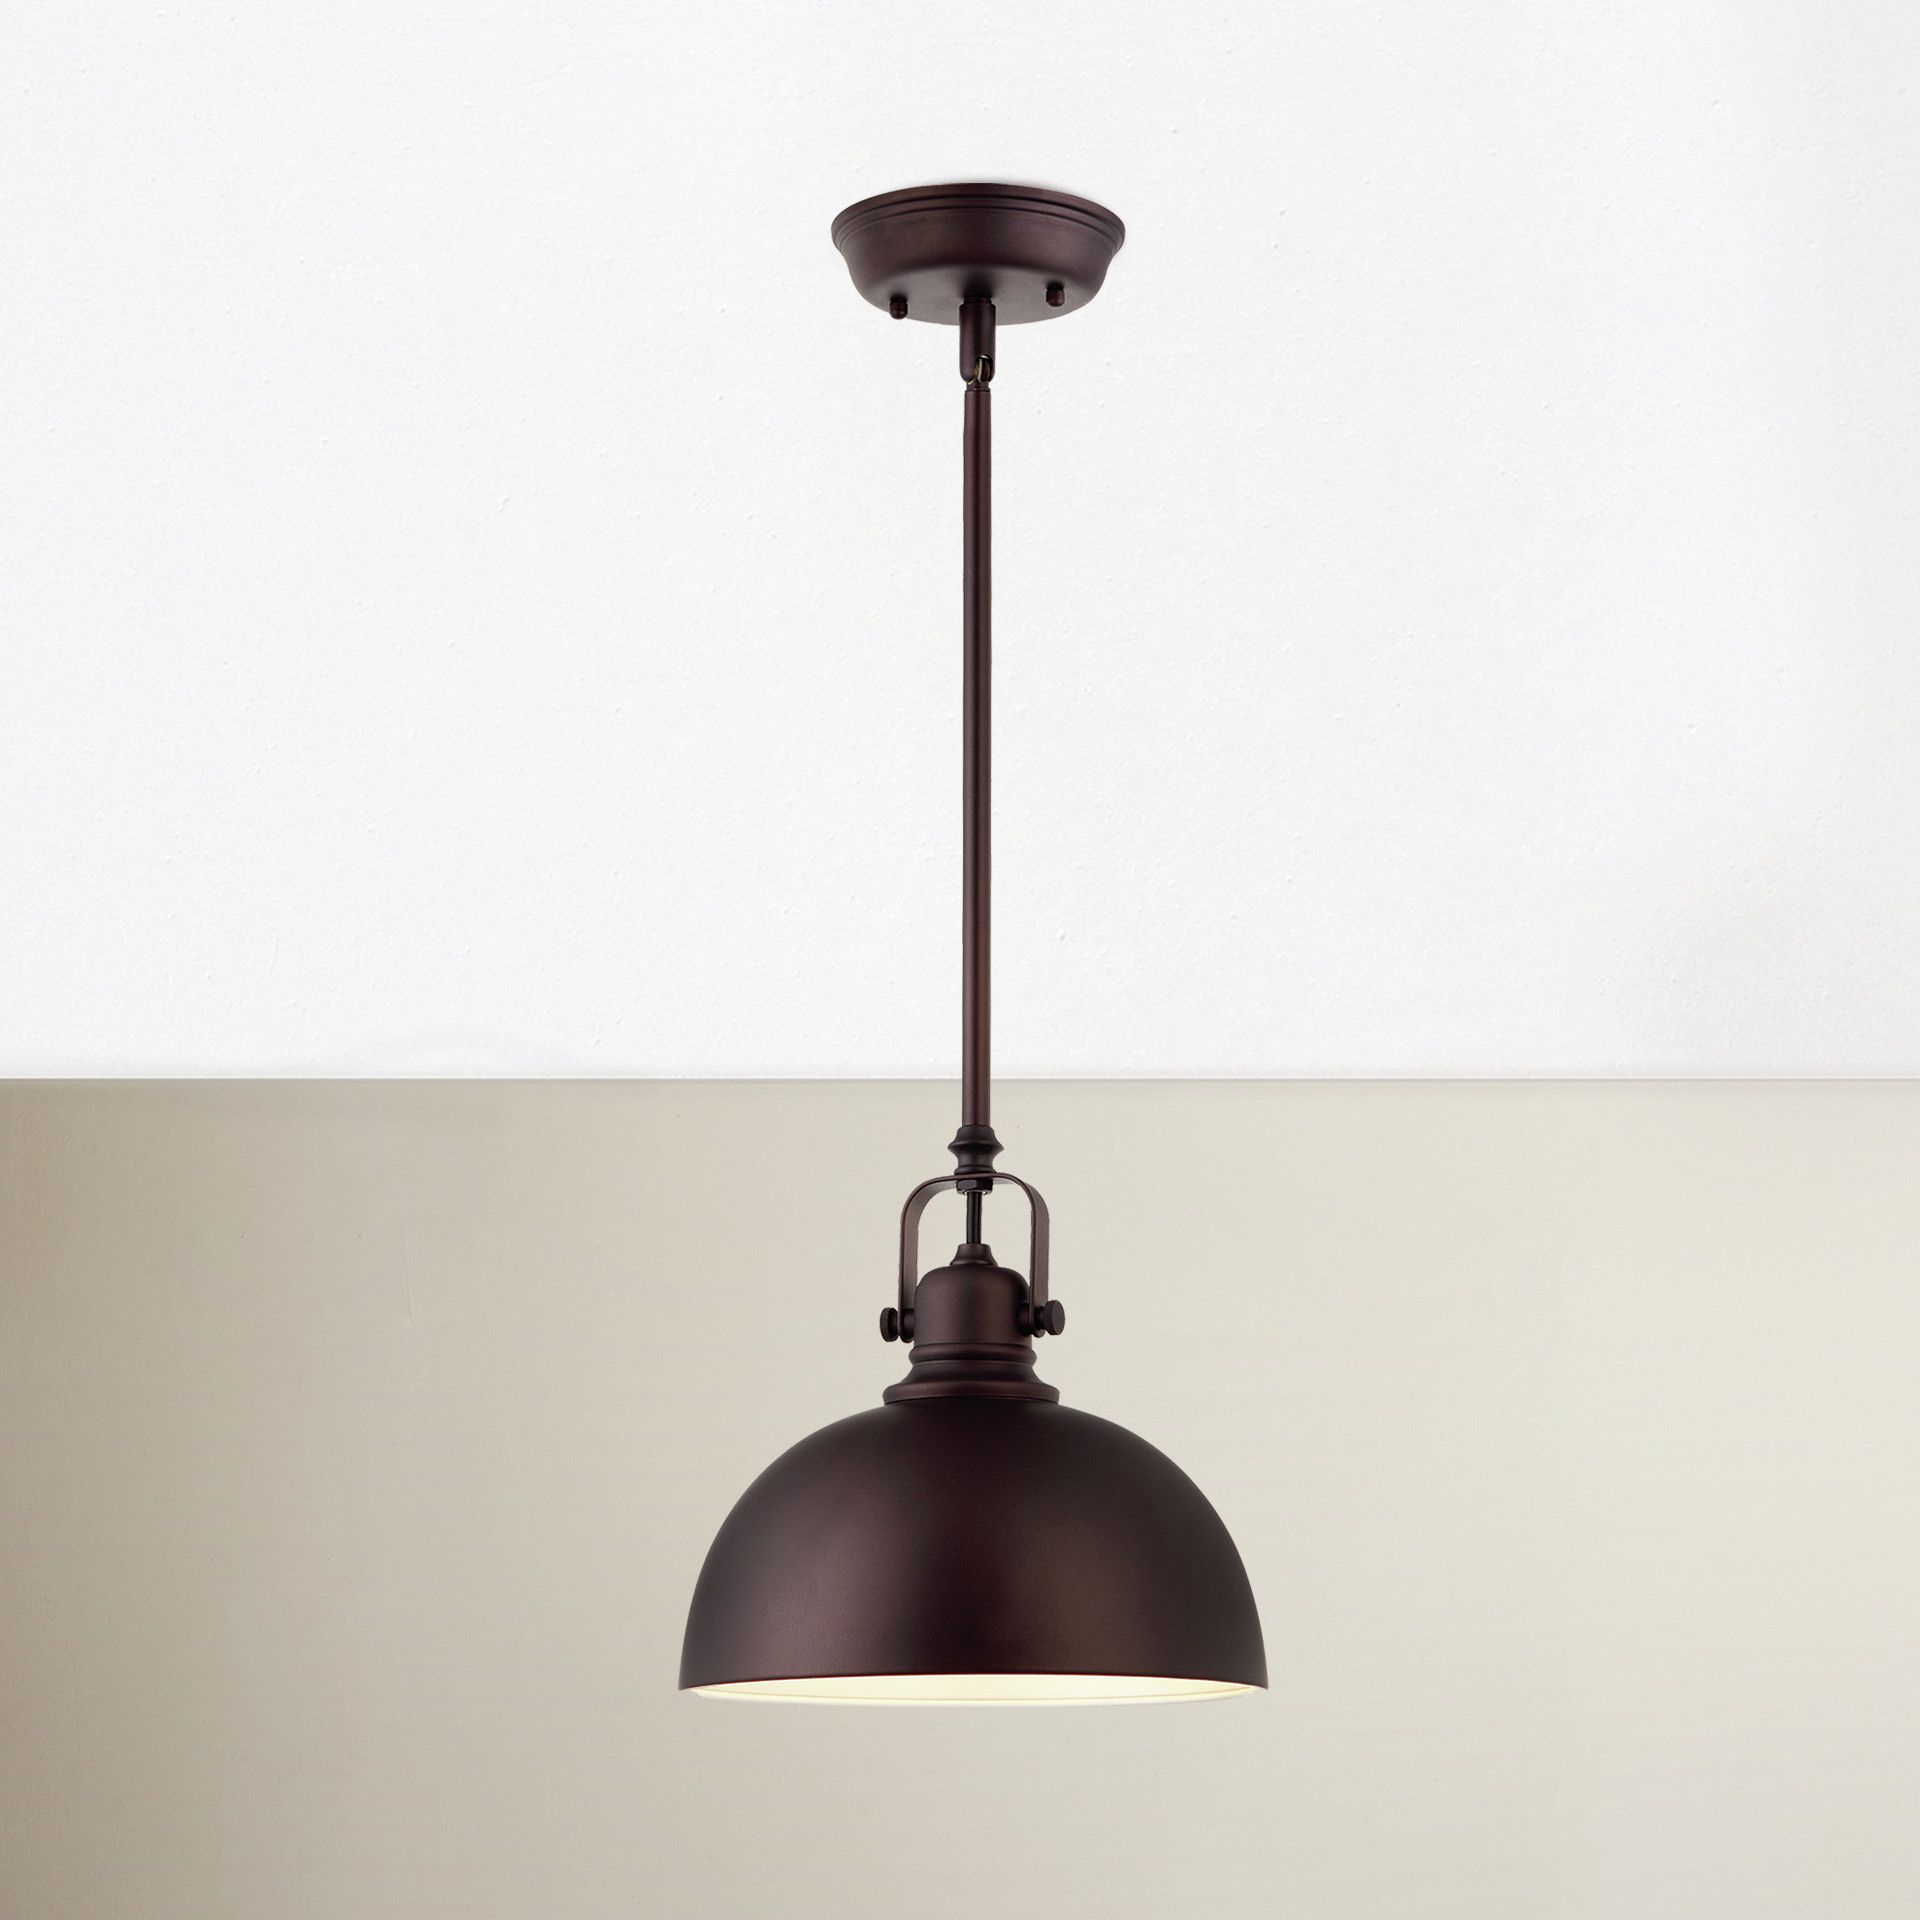 Breakwater Bay State Line 1 Light Bowl Pendant & Reviews with regard to Southlake 1-Light Single Dome Pendants (Image 9 of 30)